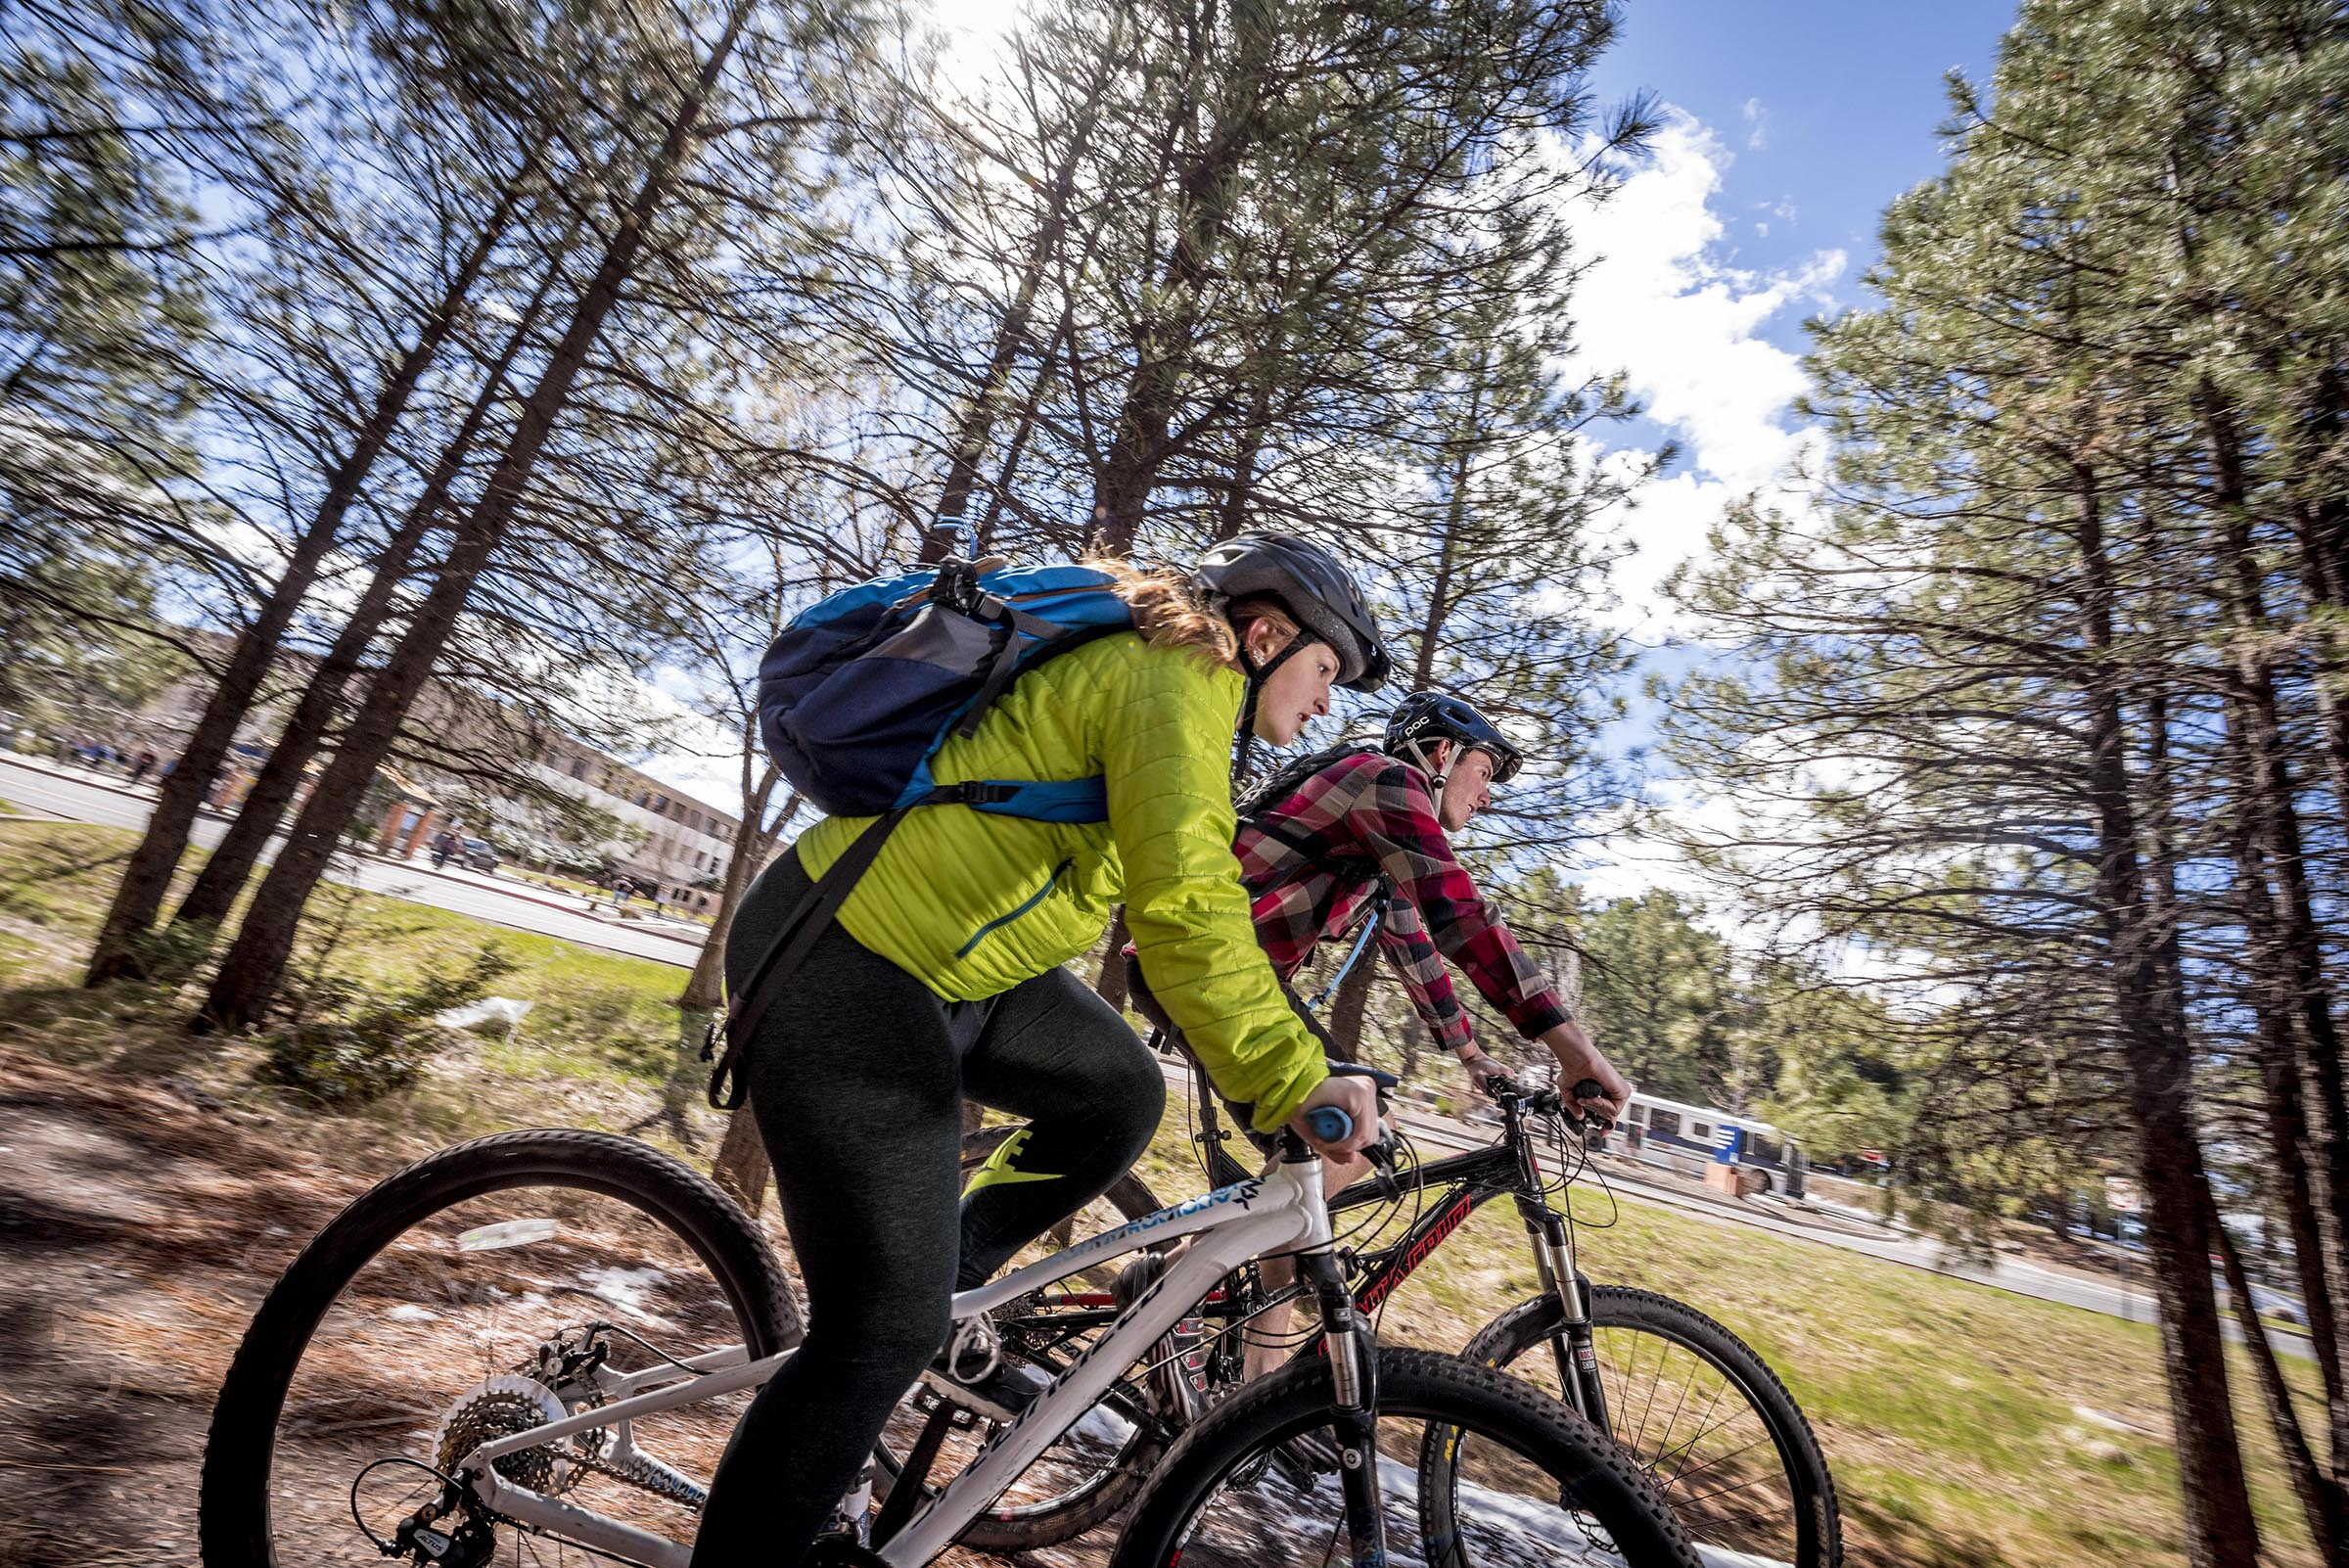 A male and female NAU student ride bikes along a dirt trail among the trees, with the business building on campus to the side of them and in the background of the image.